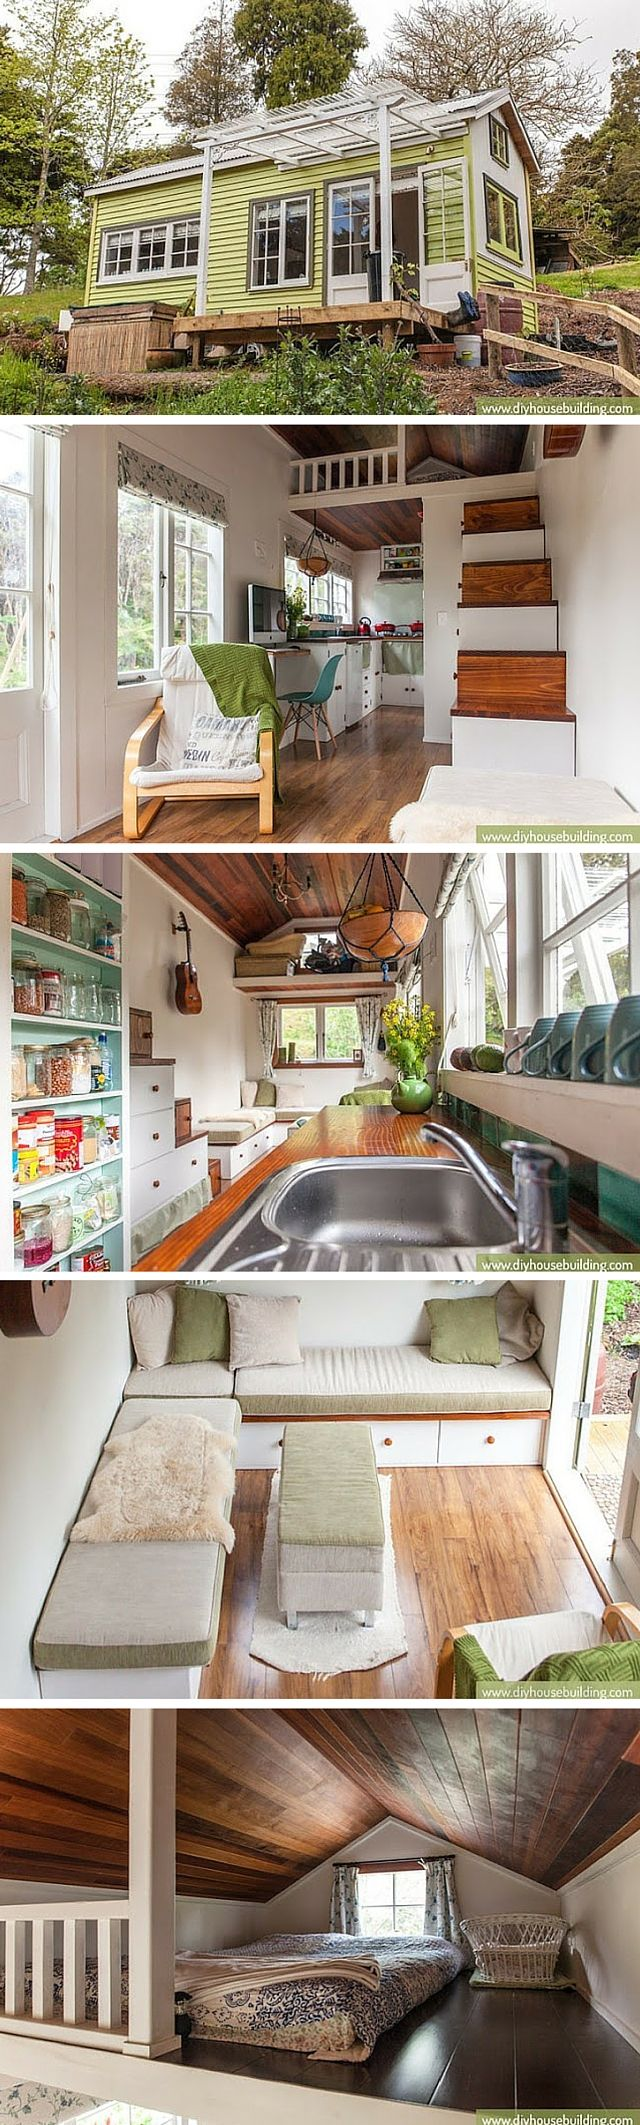 Lucy the Tiny House: a 186 sq ft home in New Zealand, occupied by a ...